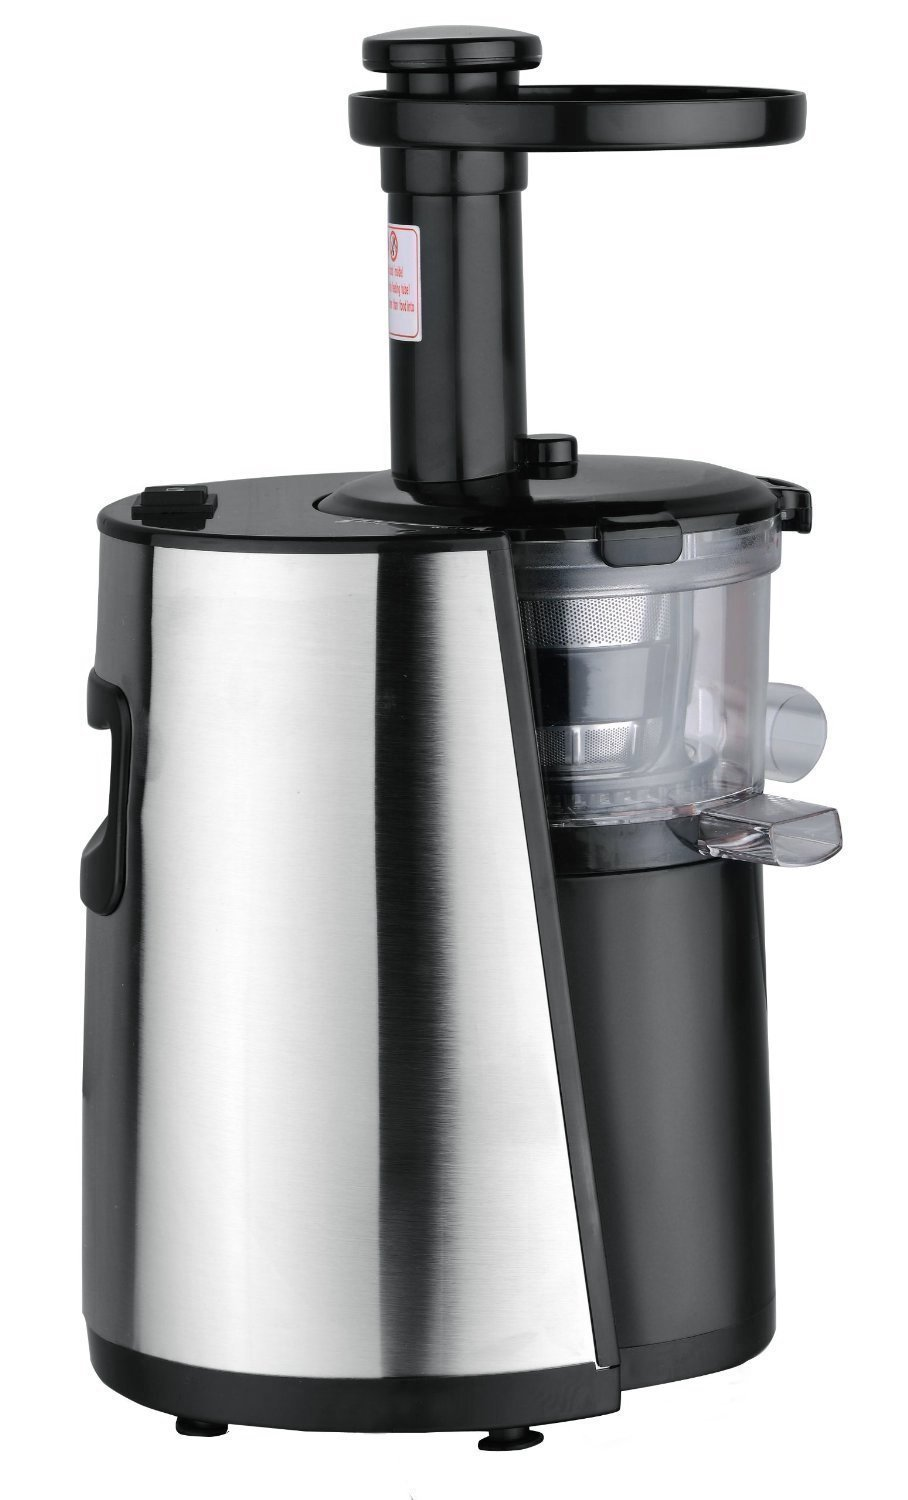 Top 10 best masticating juicers reviews